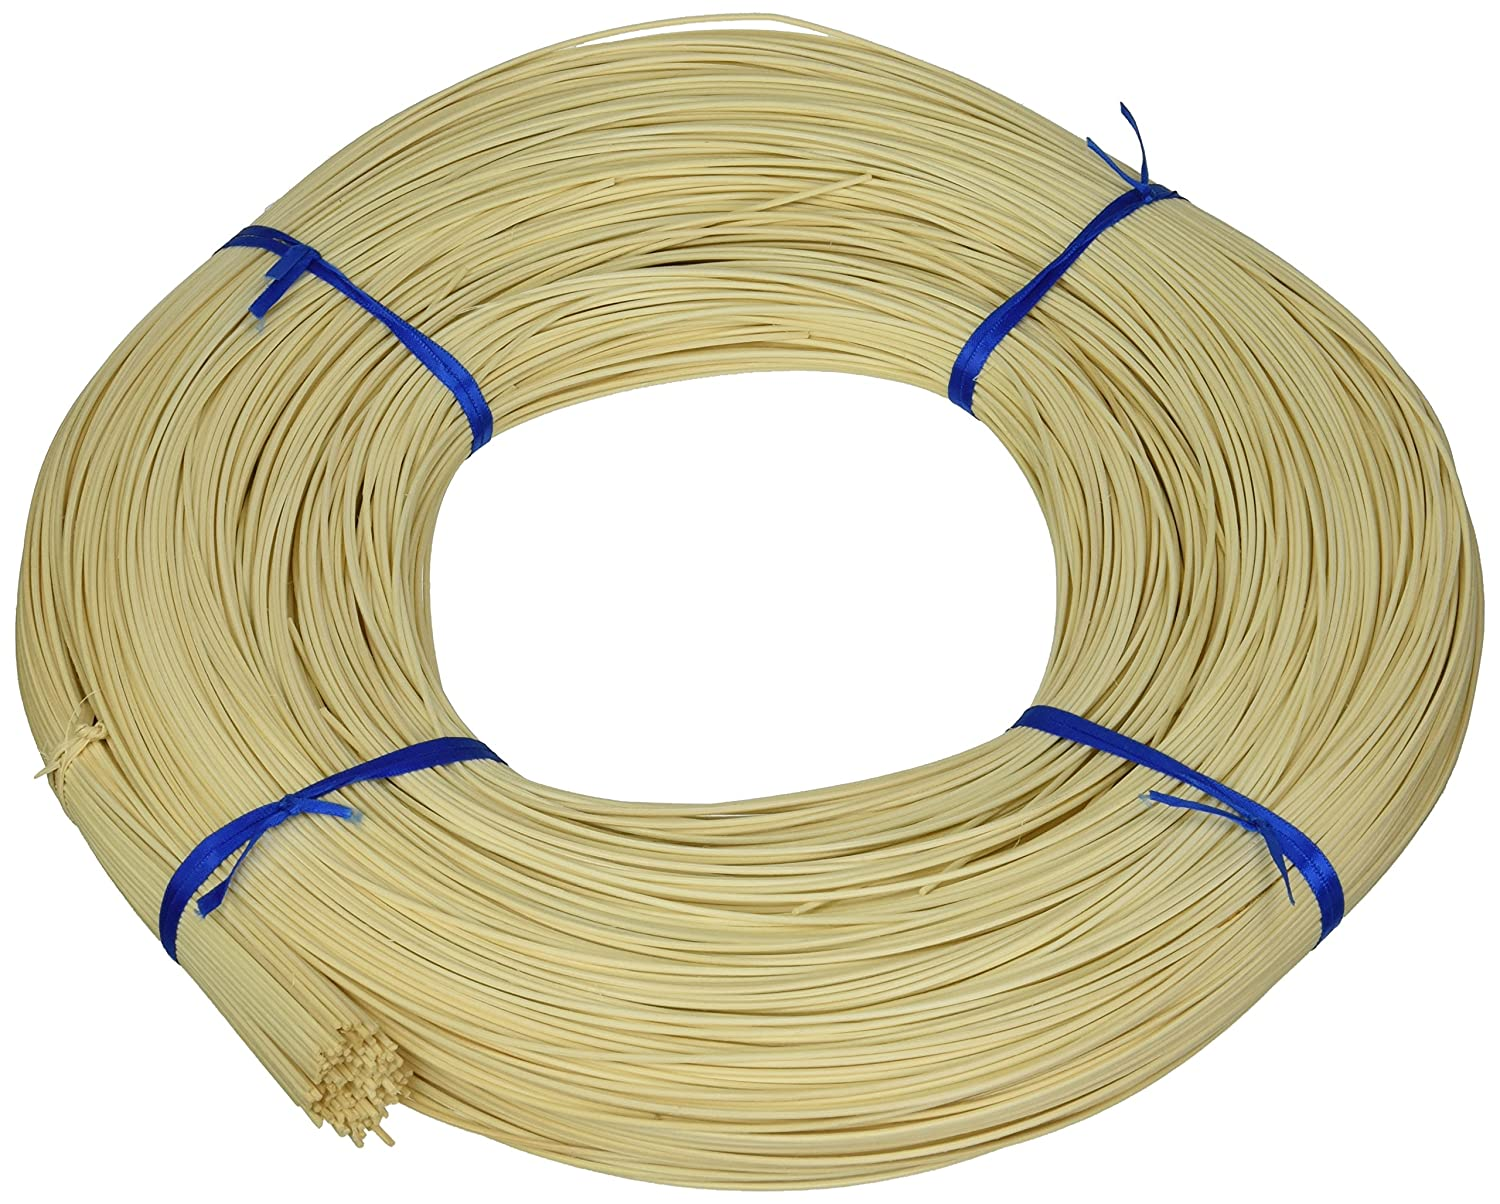 Commonwealth Basket Round Reed #1 1-1/2mm 1-Pound Coil, Approximately, 1600-Feet 1RR